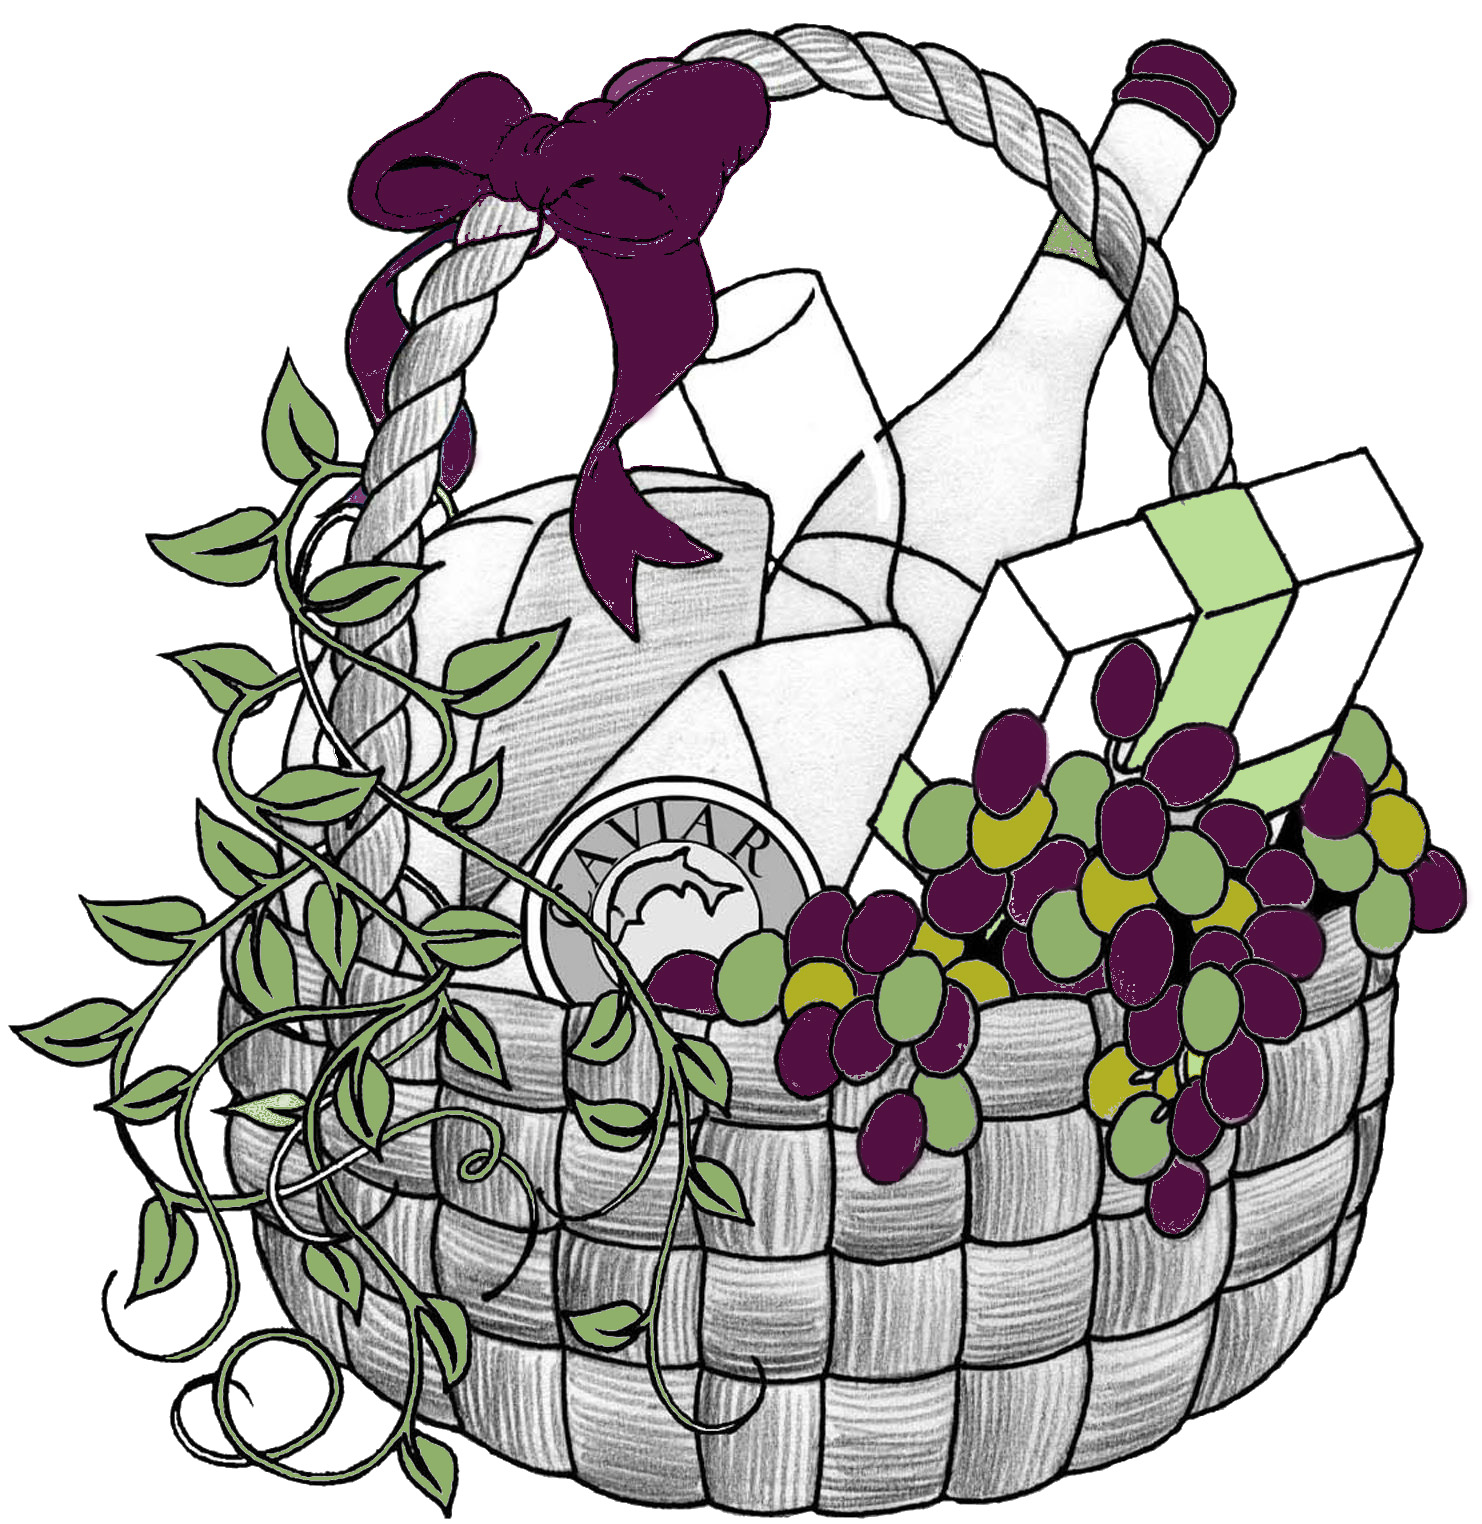 gift-basket-png-for-baskets-clipart-free-clip-art-images - Niskayuna  Reformed Church